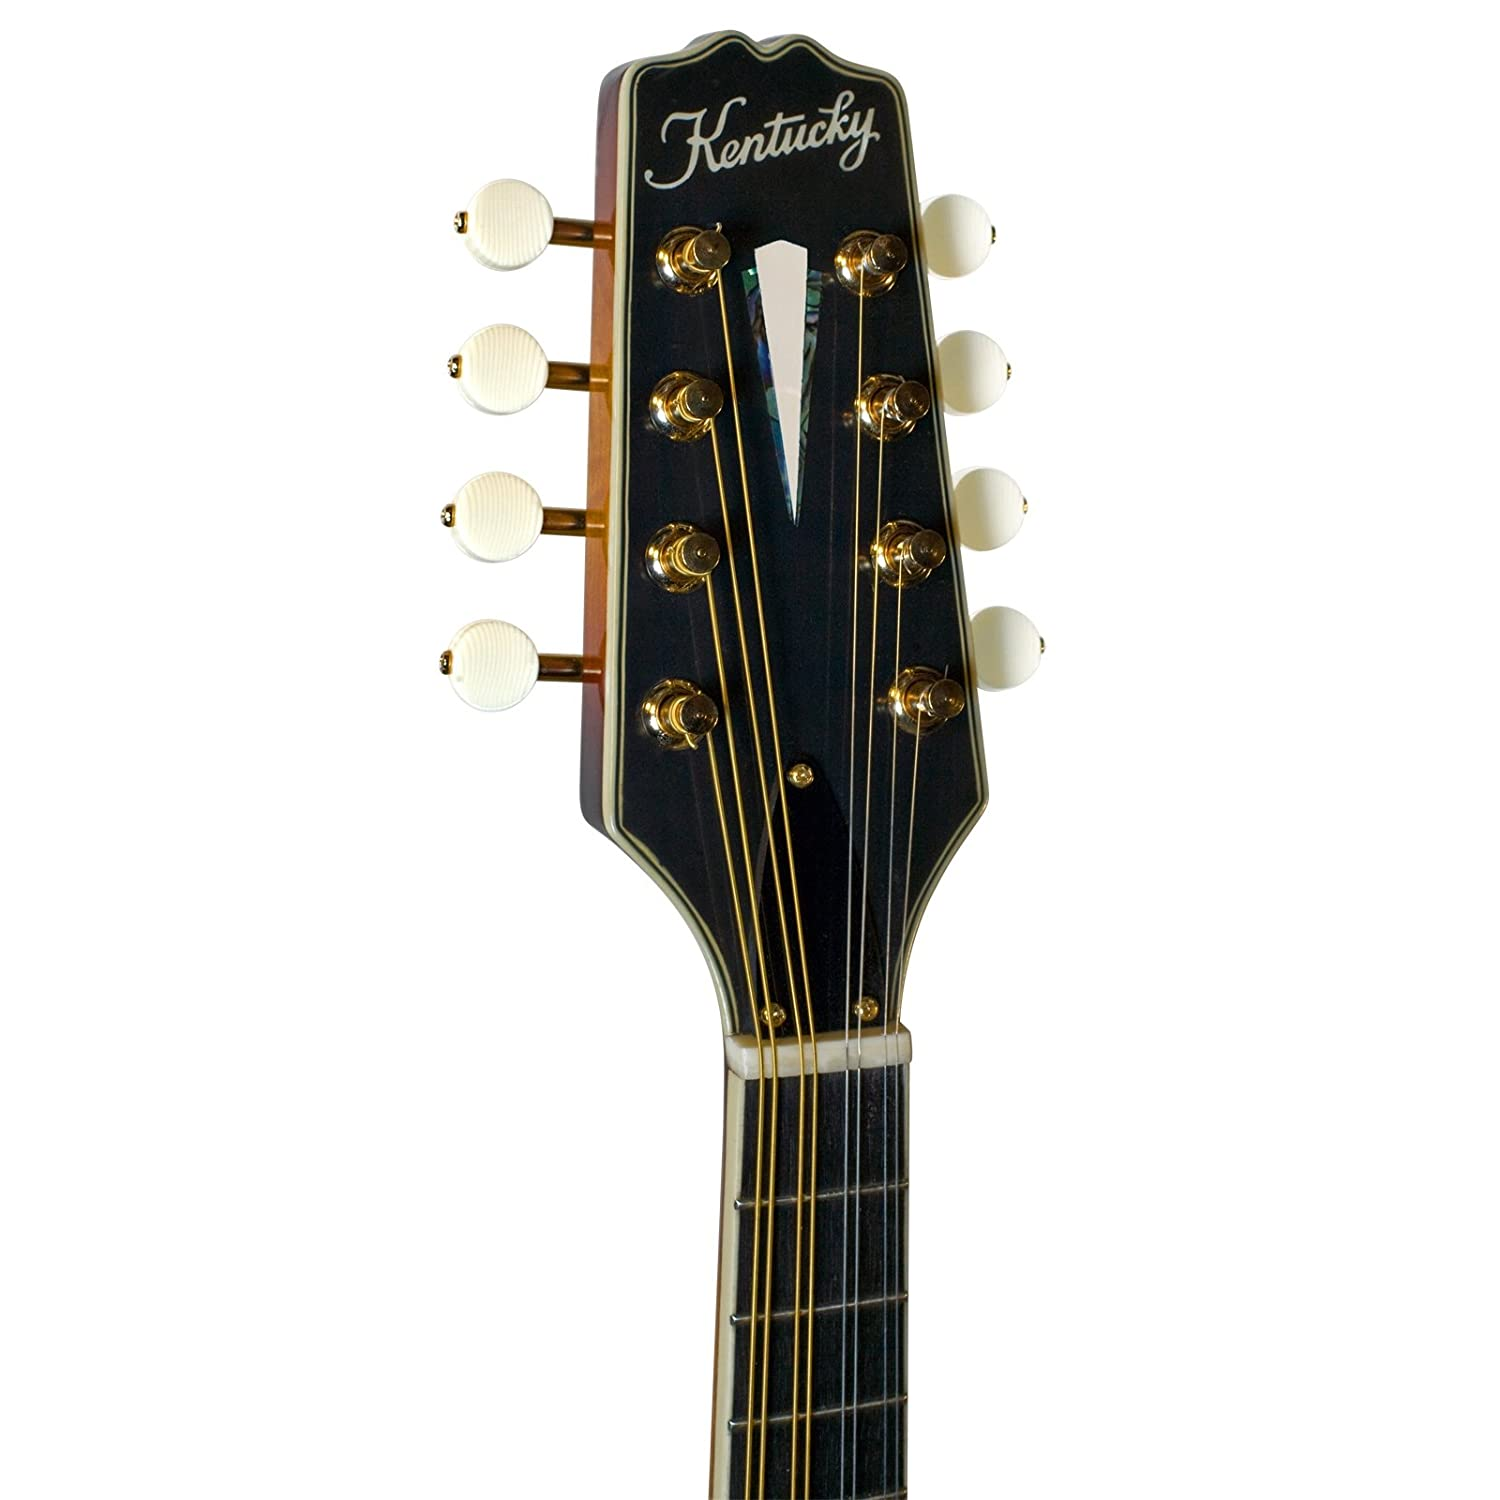 kentucky km 500 artist a model mandolin sunburst